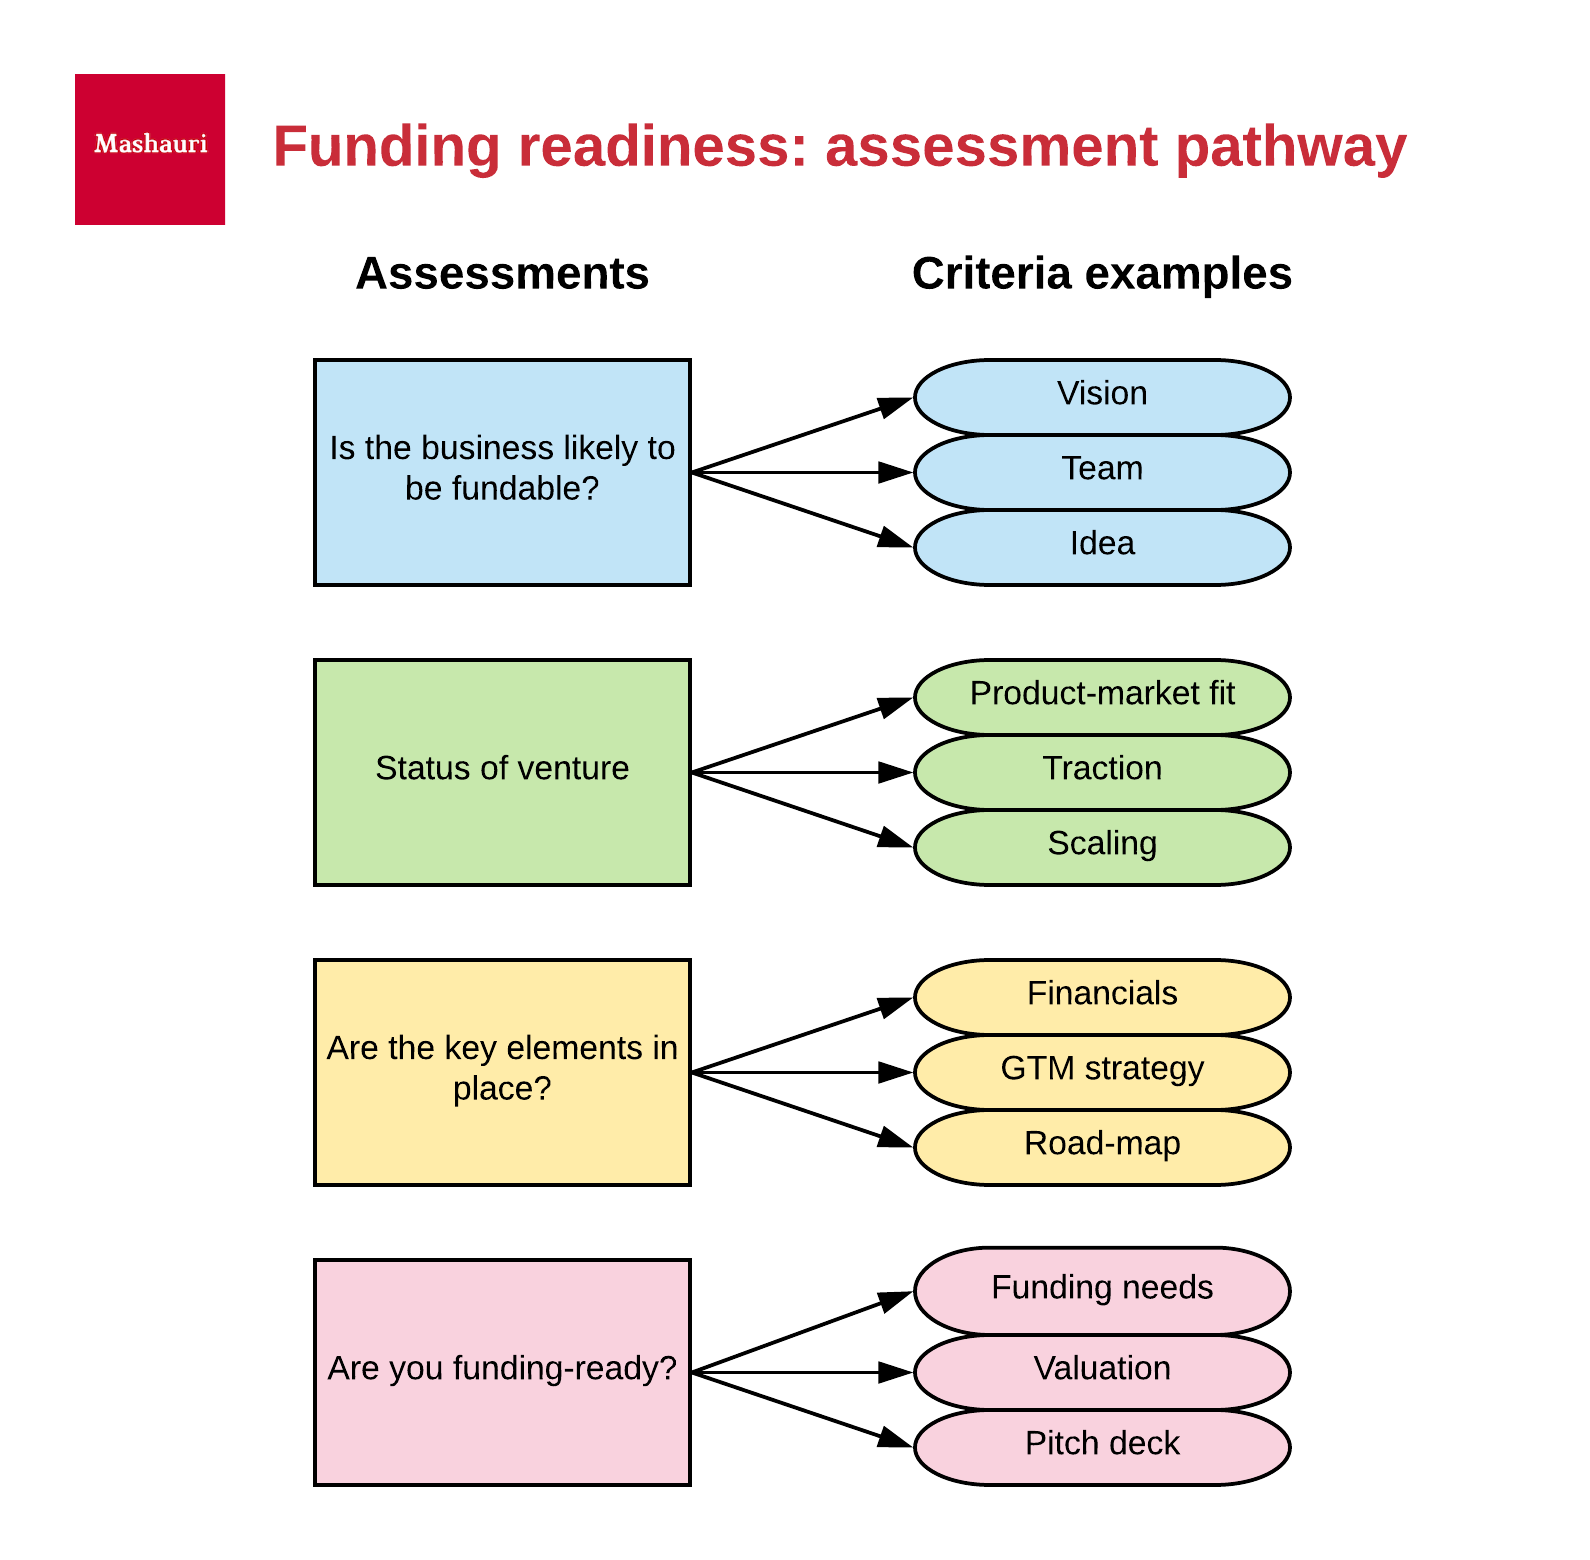 Funding assessment pathway